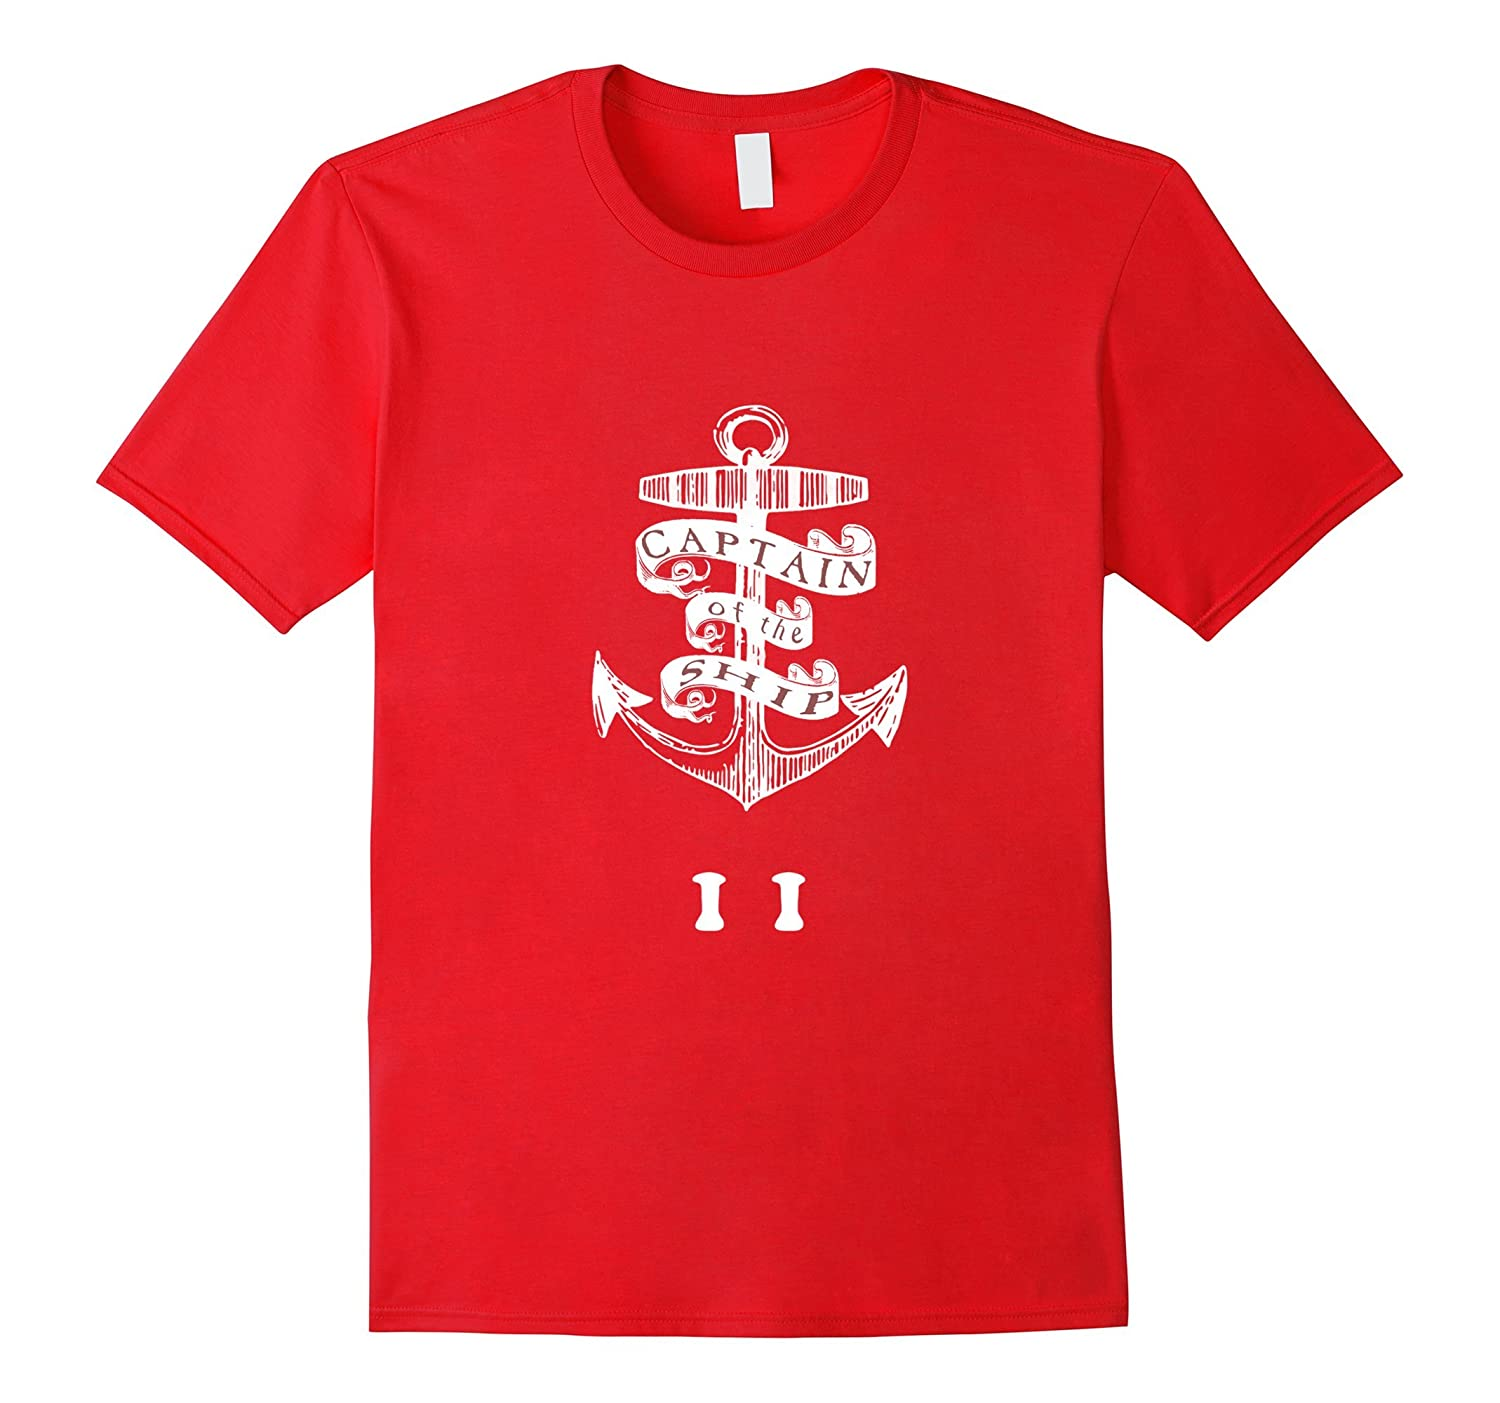 CAPTAIN OF THE SHIP T-Shirt 11 Year Old Kids Anchor Theme T